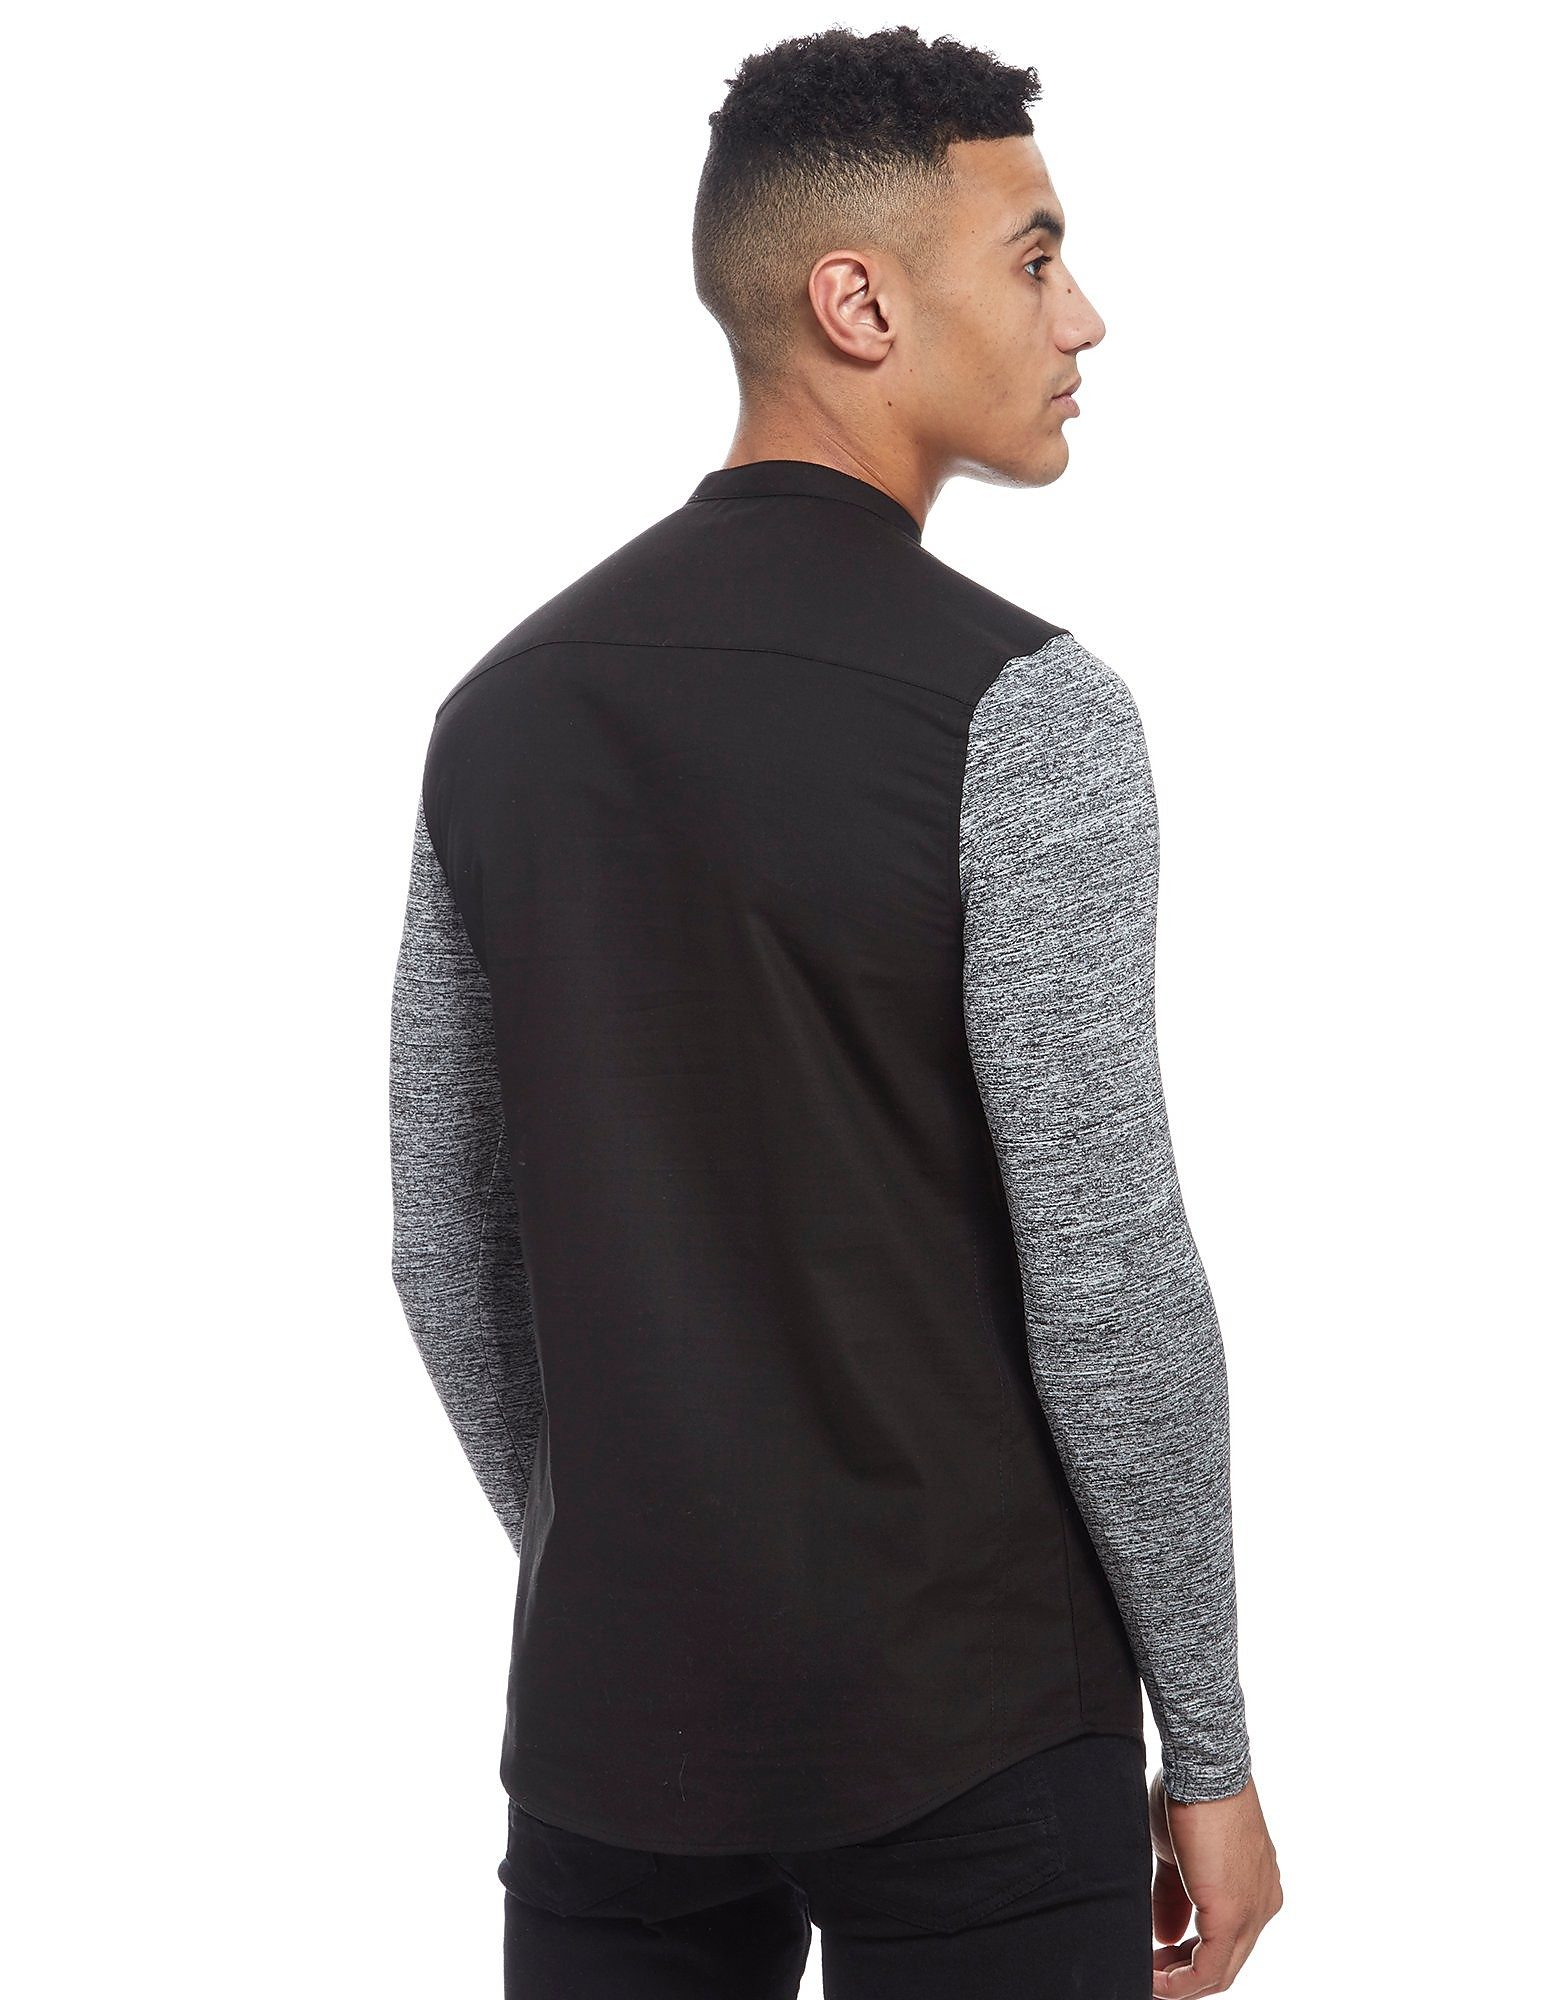 Supply & Demand Space Long Sleeve Shirt